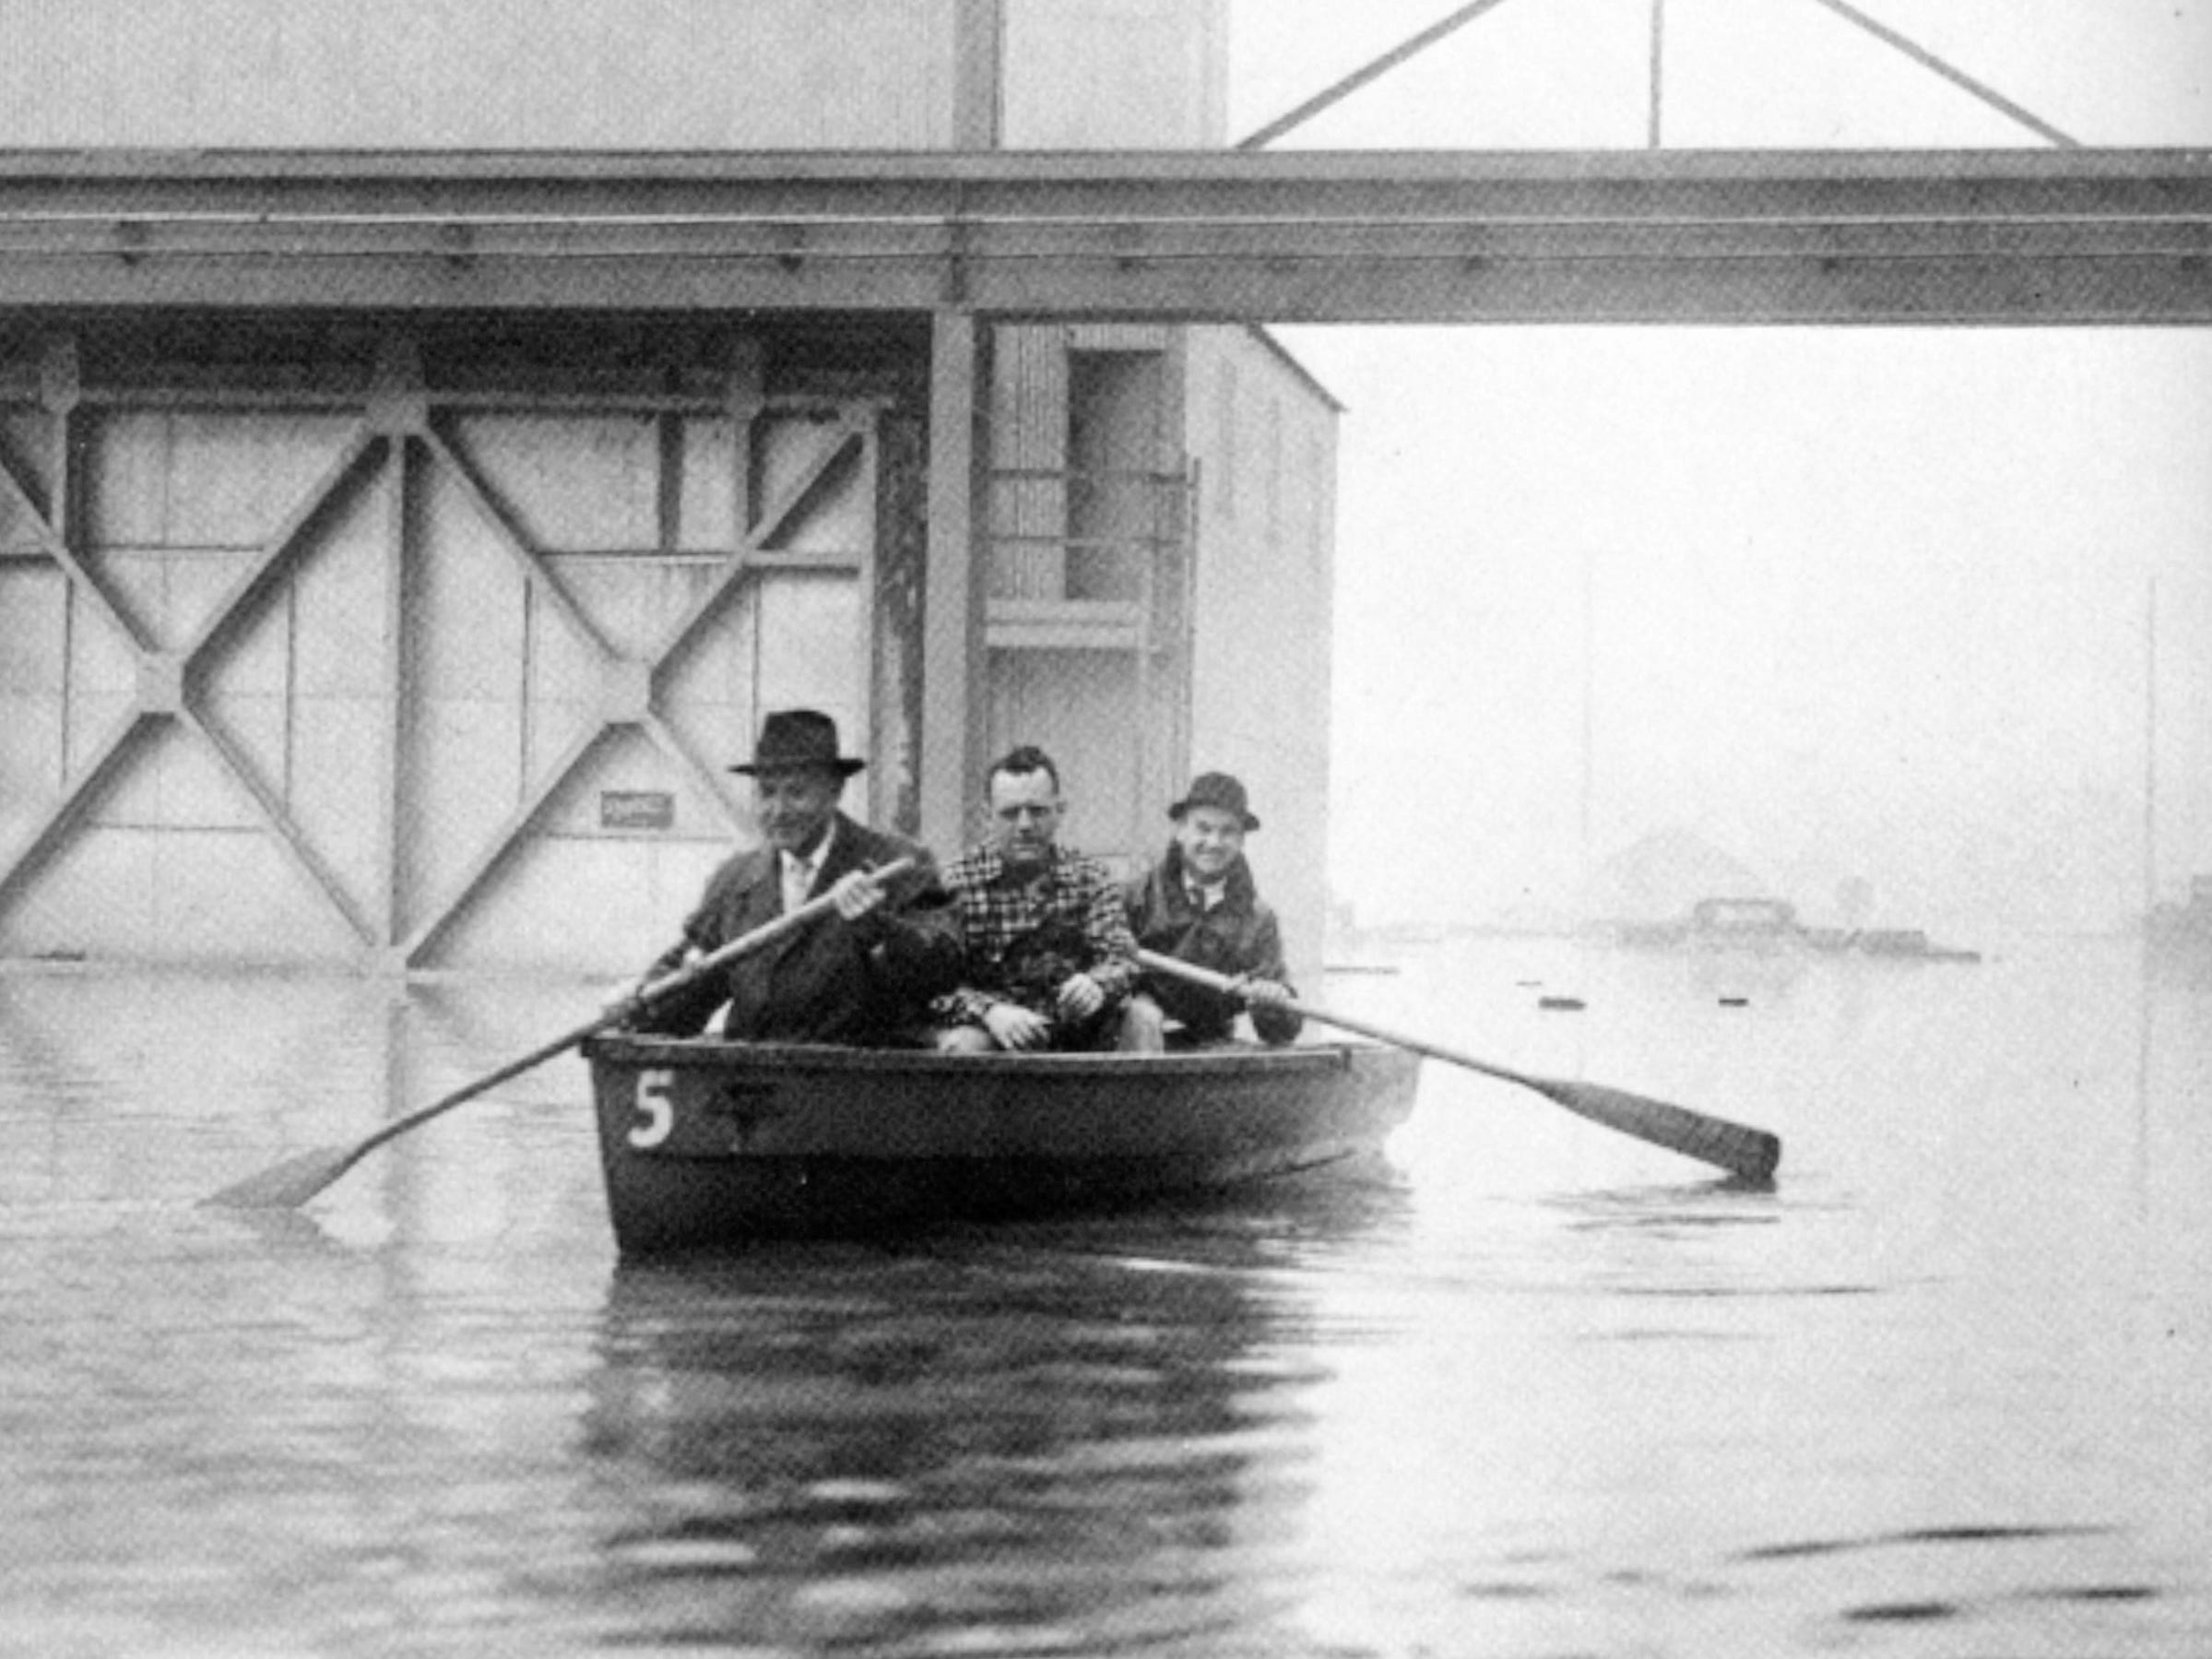 Workers at Falk Corp. are rescued after the Menomonee River overflowed into the company's plant at 3001 W. Canal St. on March 30, 1960.